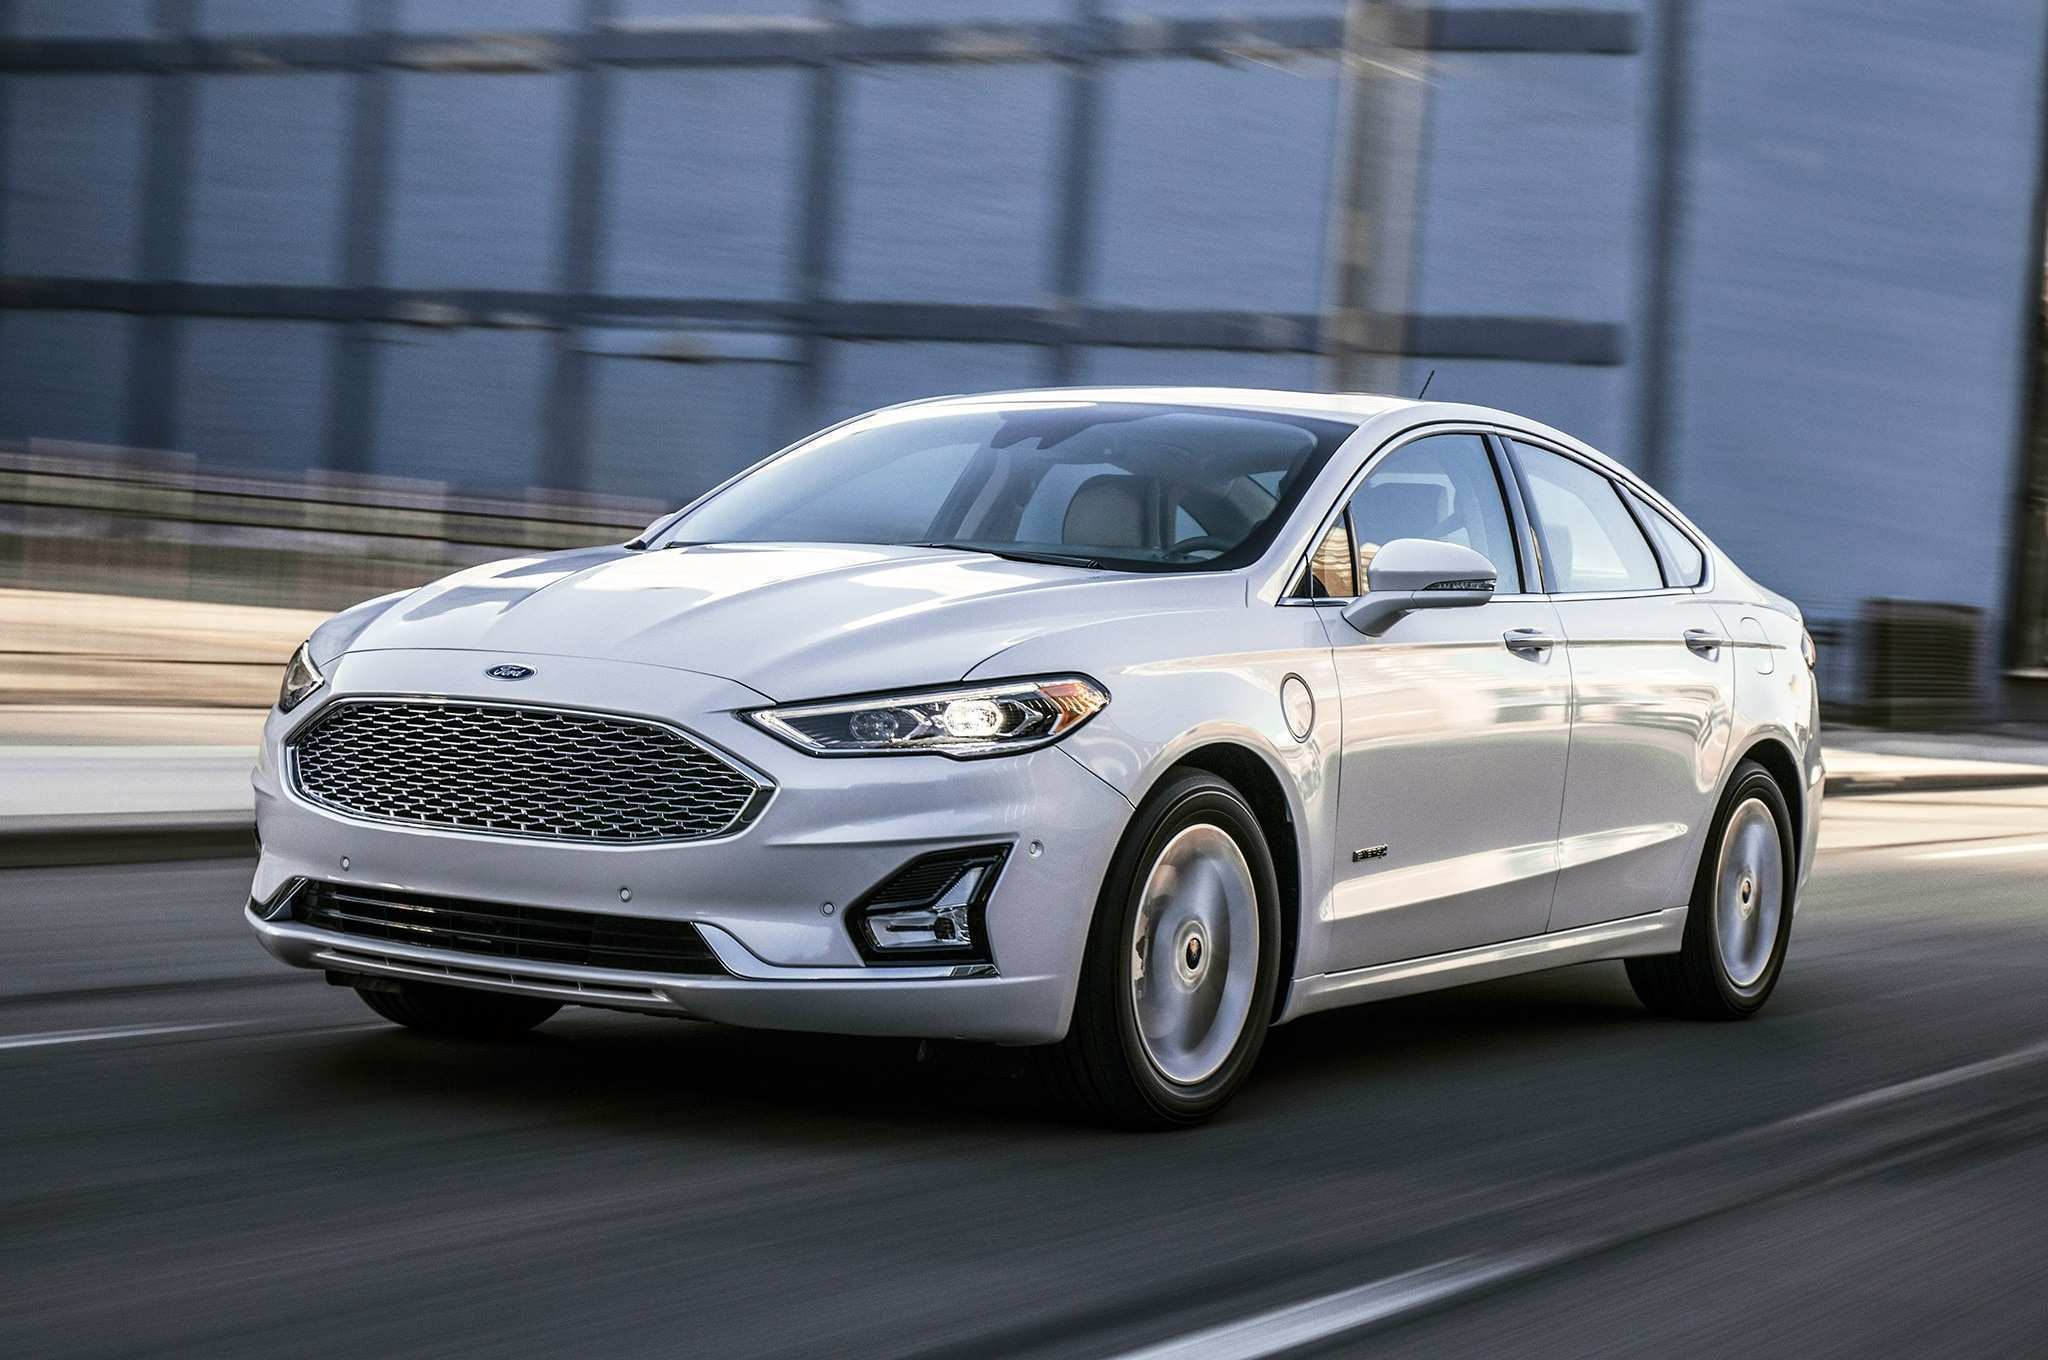 79 New 2019 The Spy Shots Ford Fusion Rumors